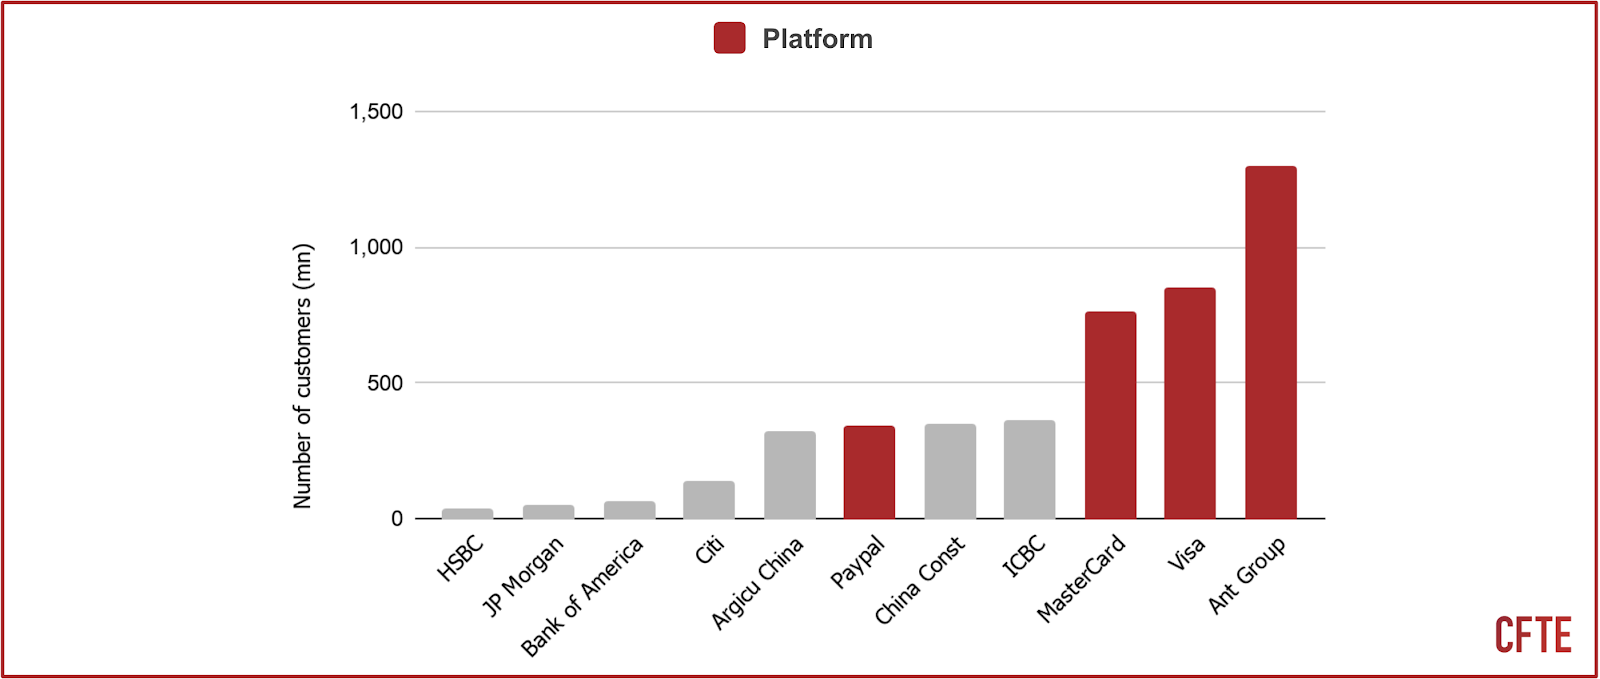 a graph that shows the number of customers of platform vs non-platform financial institutions.